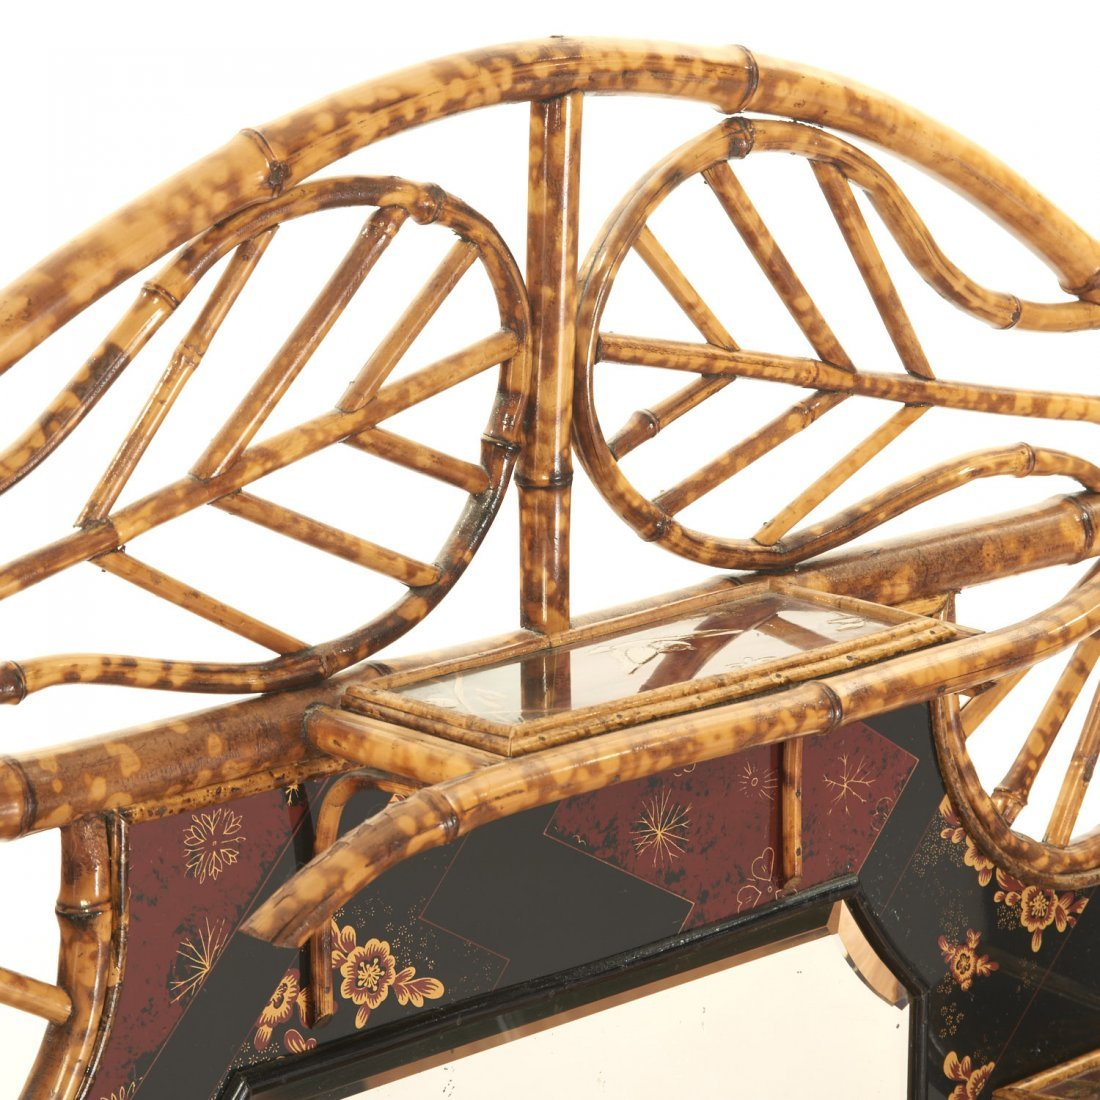 Victorian style chinoiserie lacquer etagere - 7